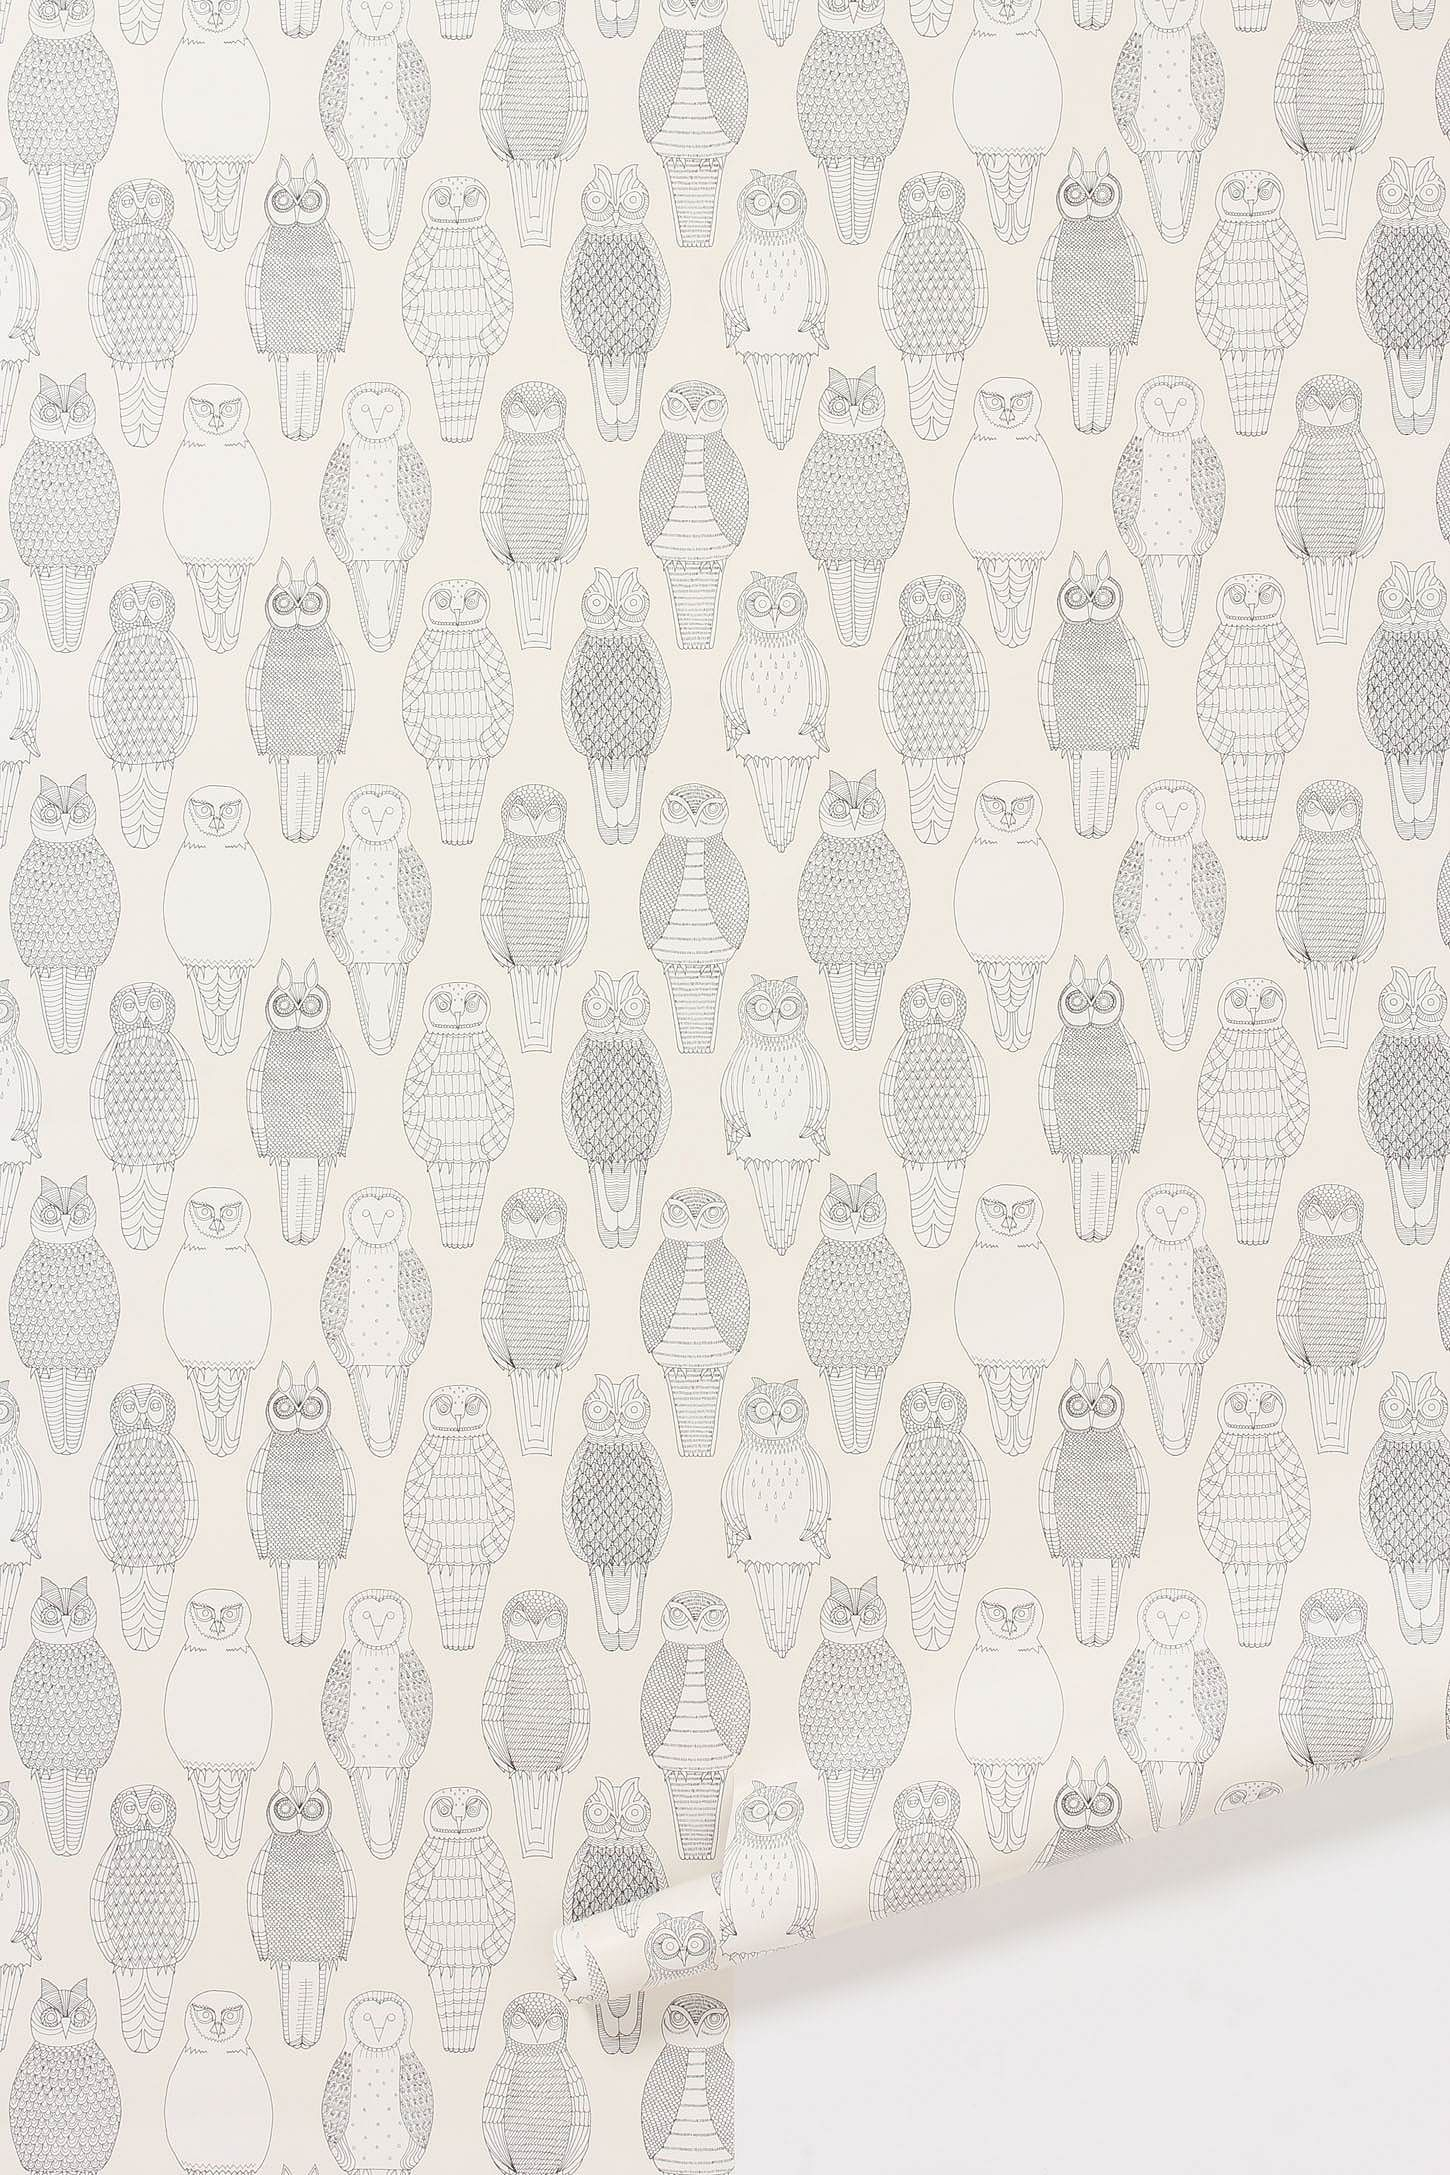 Owls Of The British Isles Wallpaper   Anthropologiecom For the 1450x2175